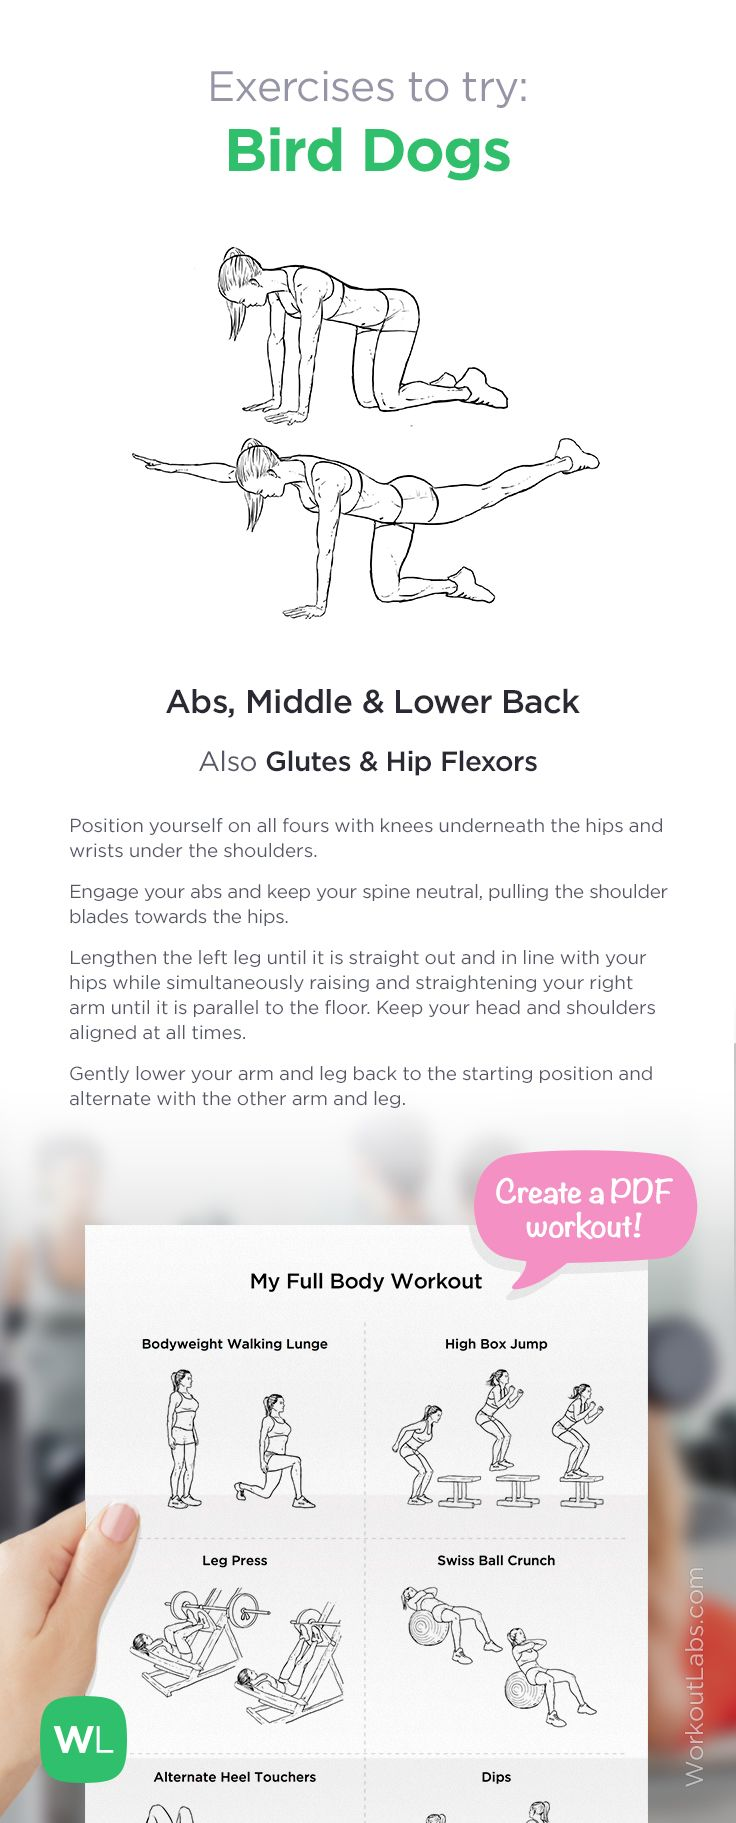 Exercise to try: Bird Dogs | Add it to your custom printable workout at http://WorkoutLabs.com!